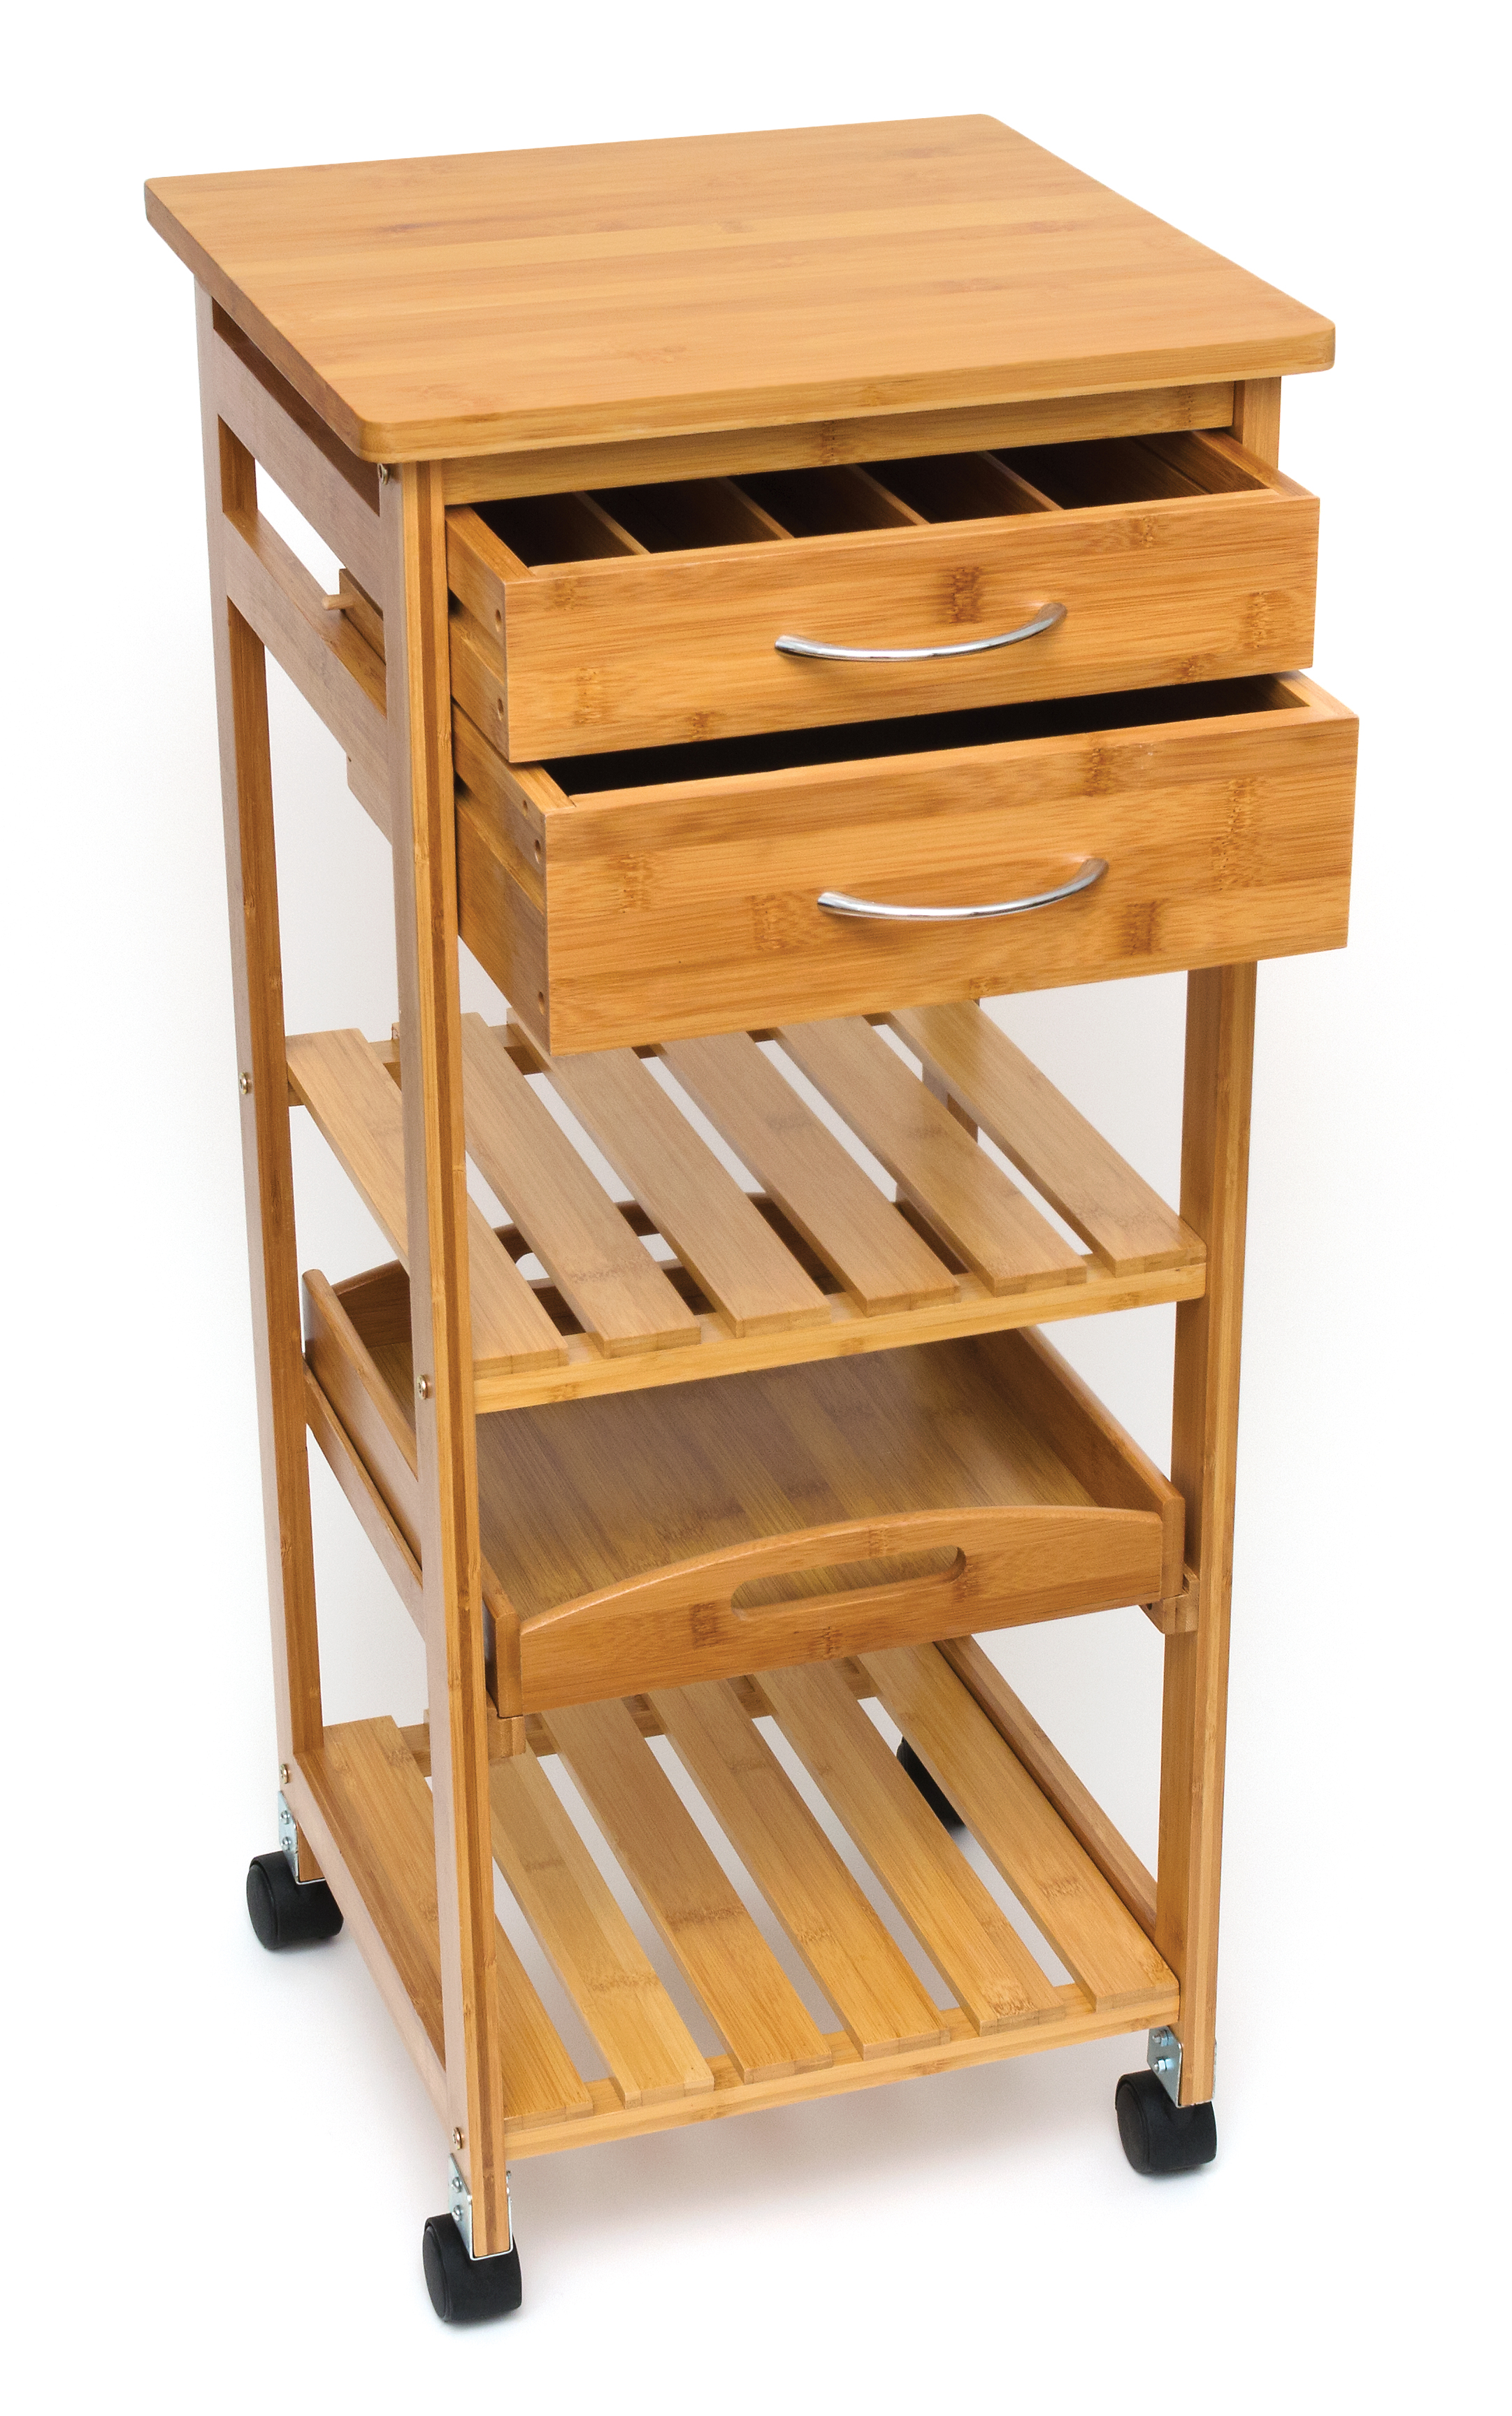 Bamboo Space Saving Serving Cart With Removable Tray | Lipper International